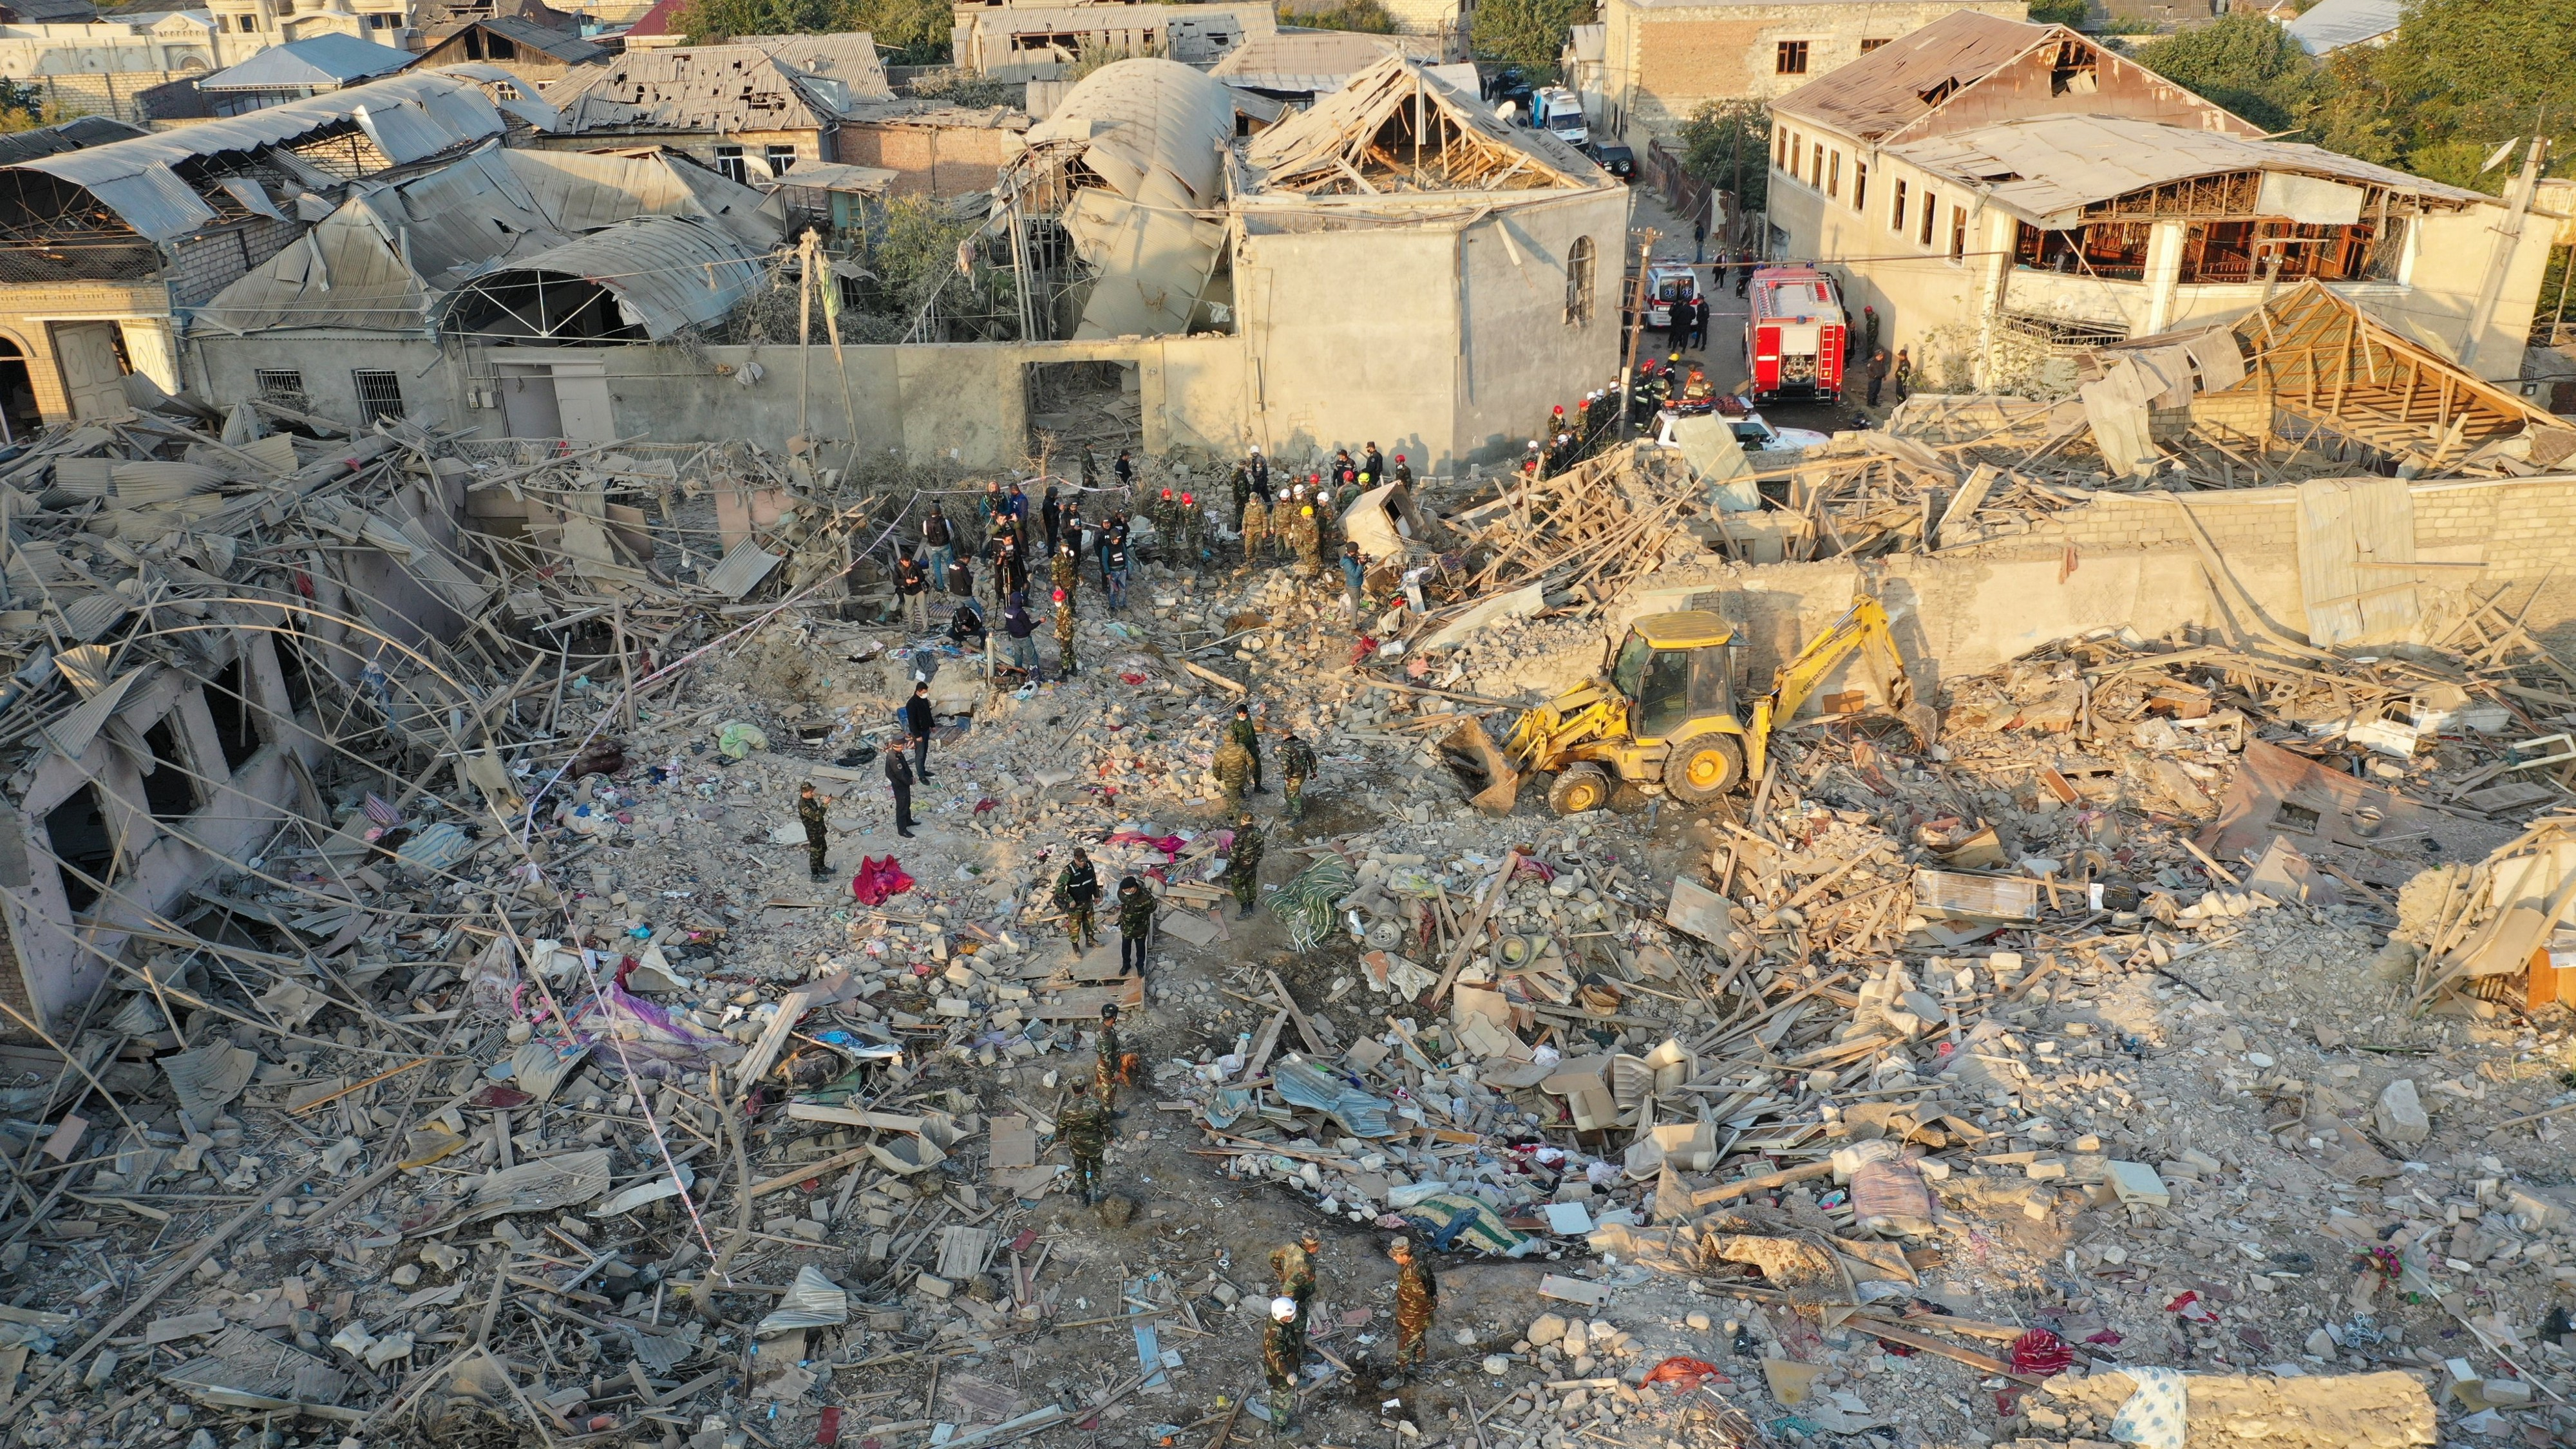 Emergency teams at work in the rubble of the latest rocket attack on Ganja, Azerbaijan, killing 13 and wounding 52